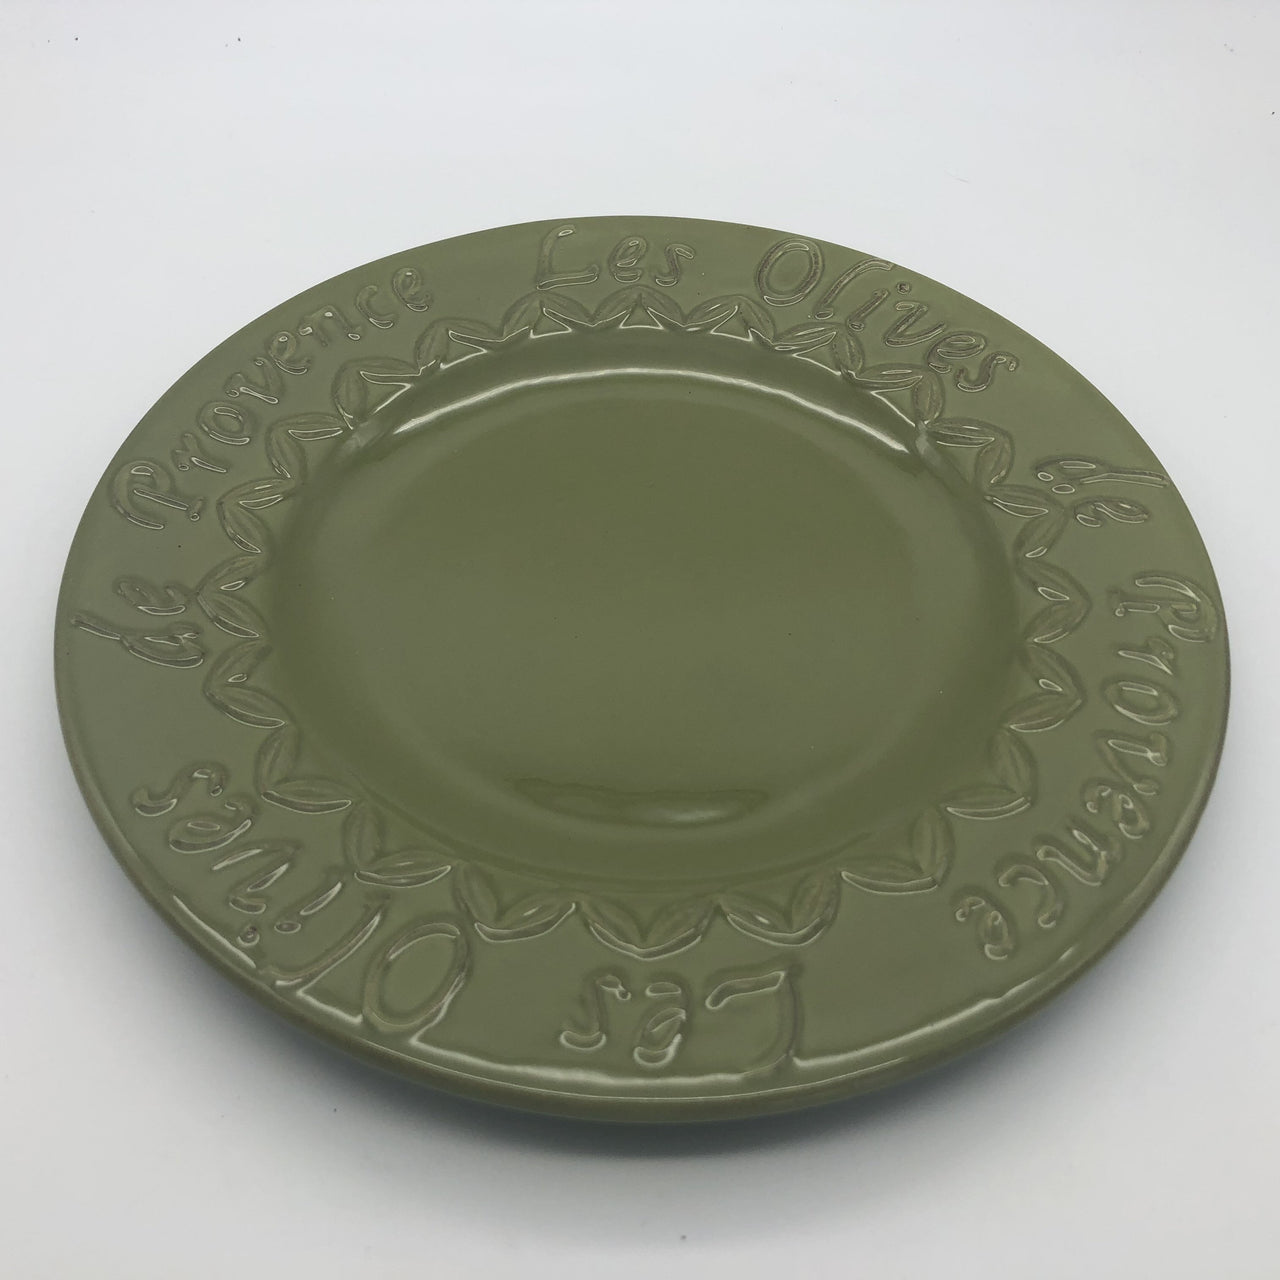 Sakura Les Olives de Provence Green Embossed Earthenware Dinner Plate